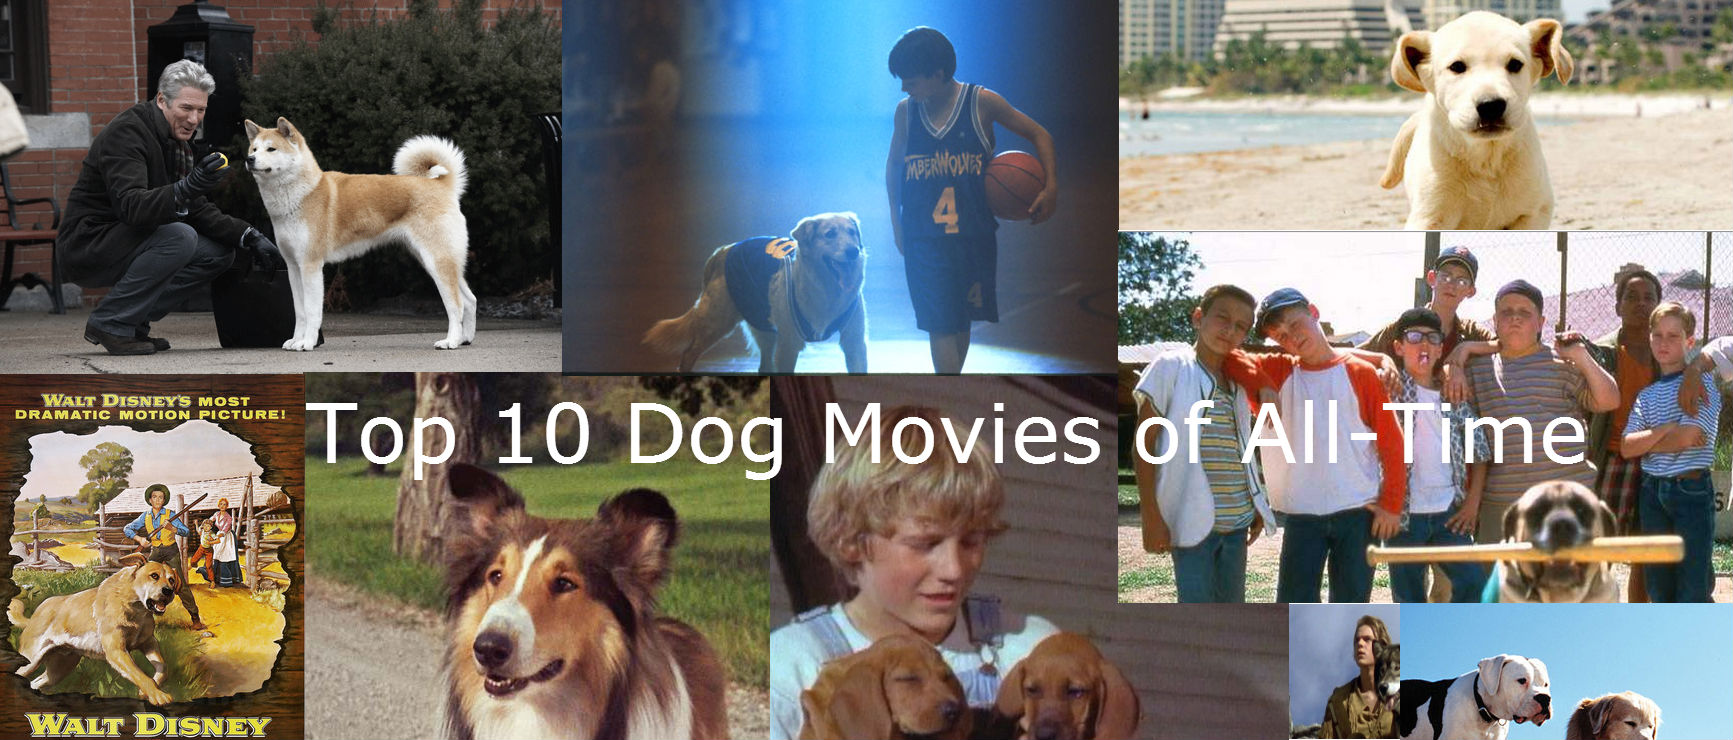 Top 10 movies of all time top 10 dog movies of all time